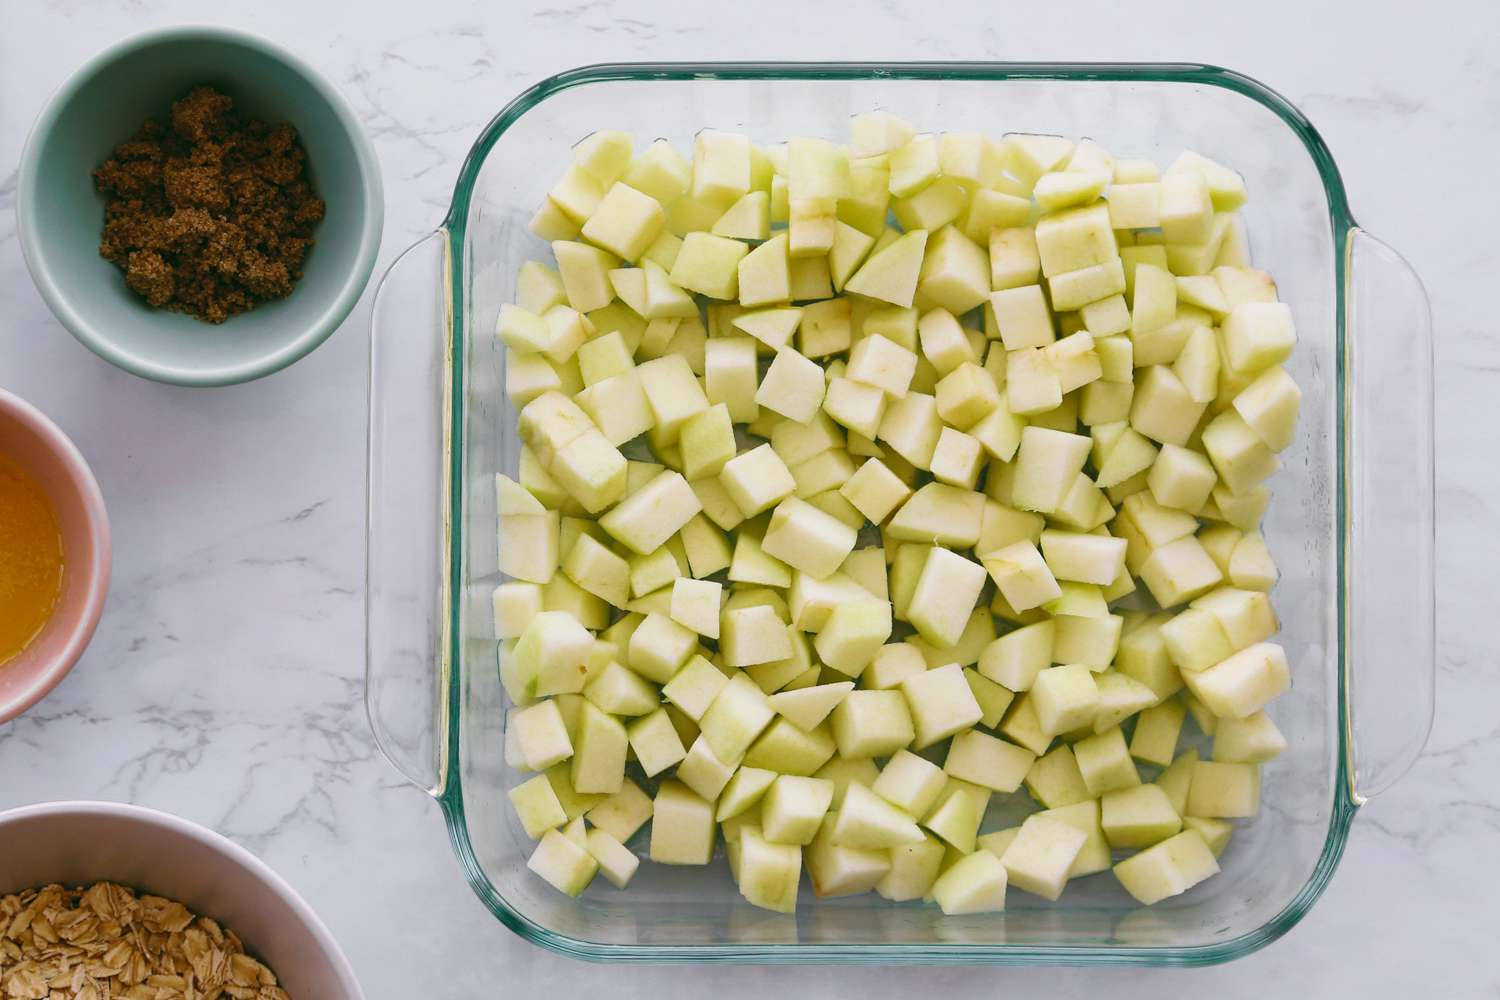 apple pieces in a baking dish